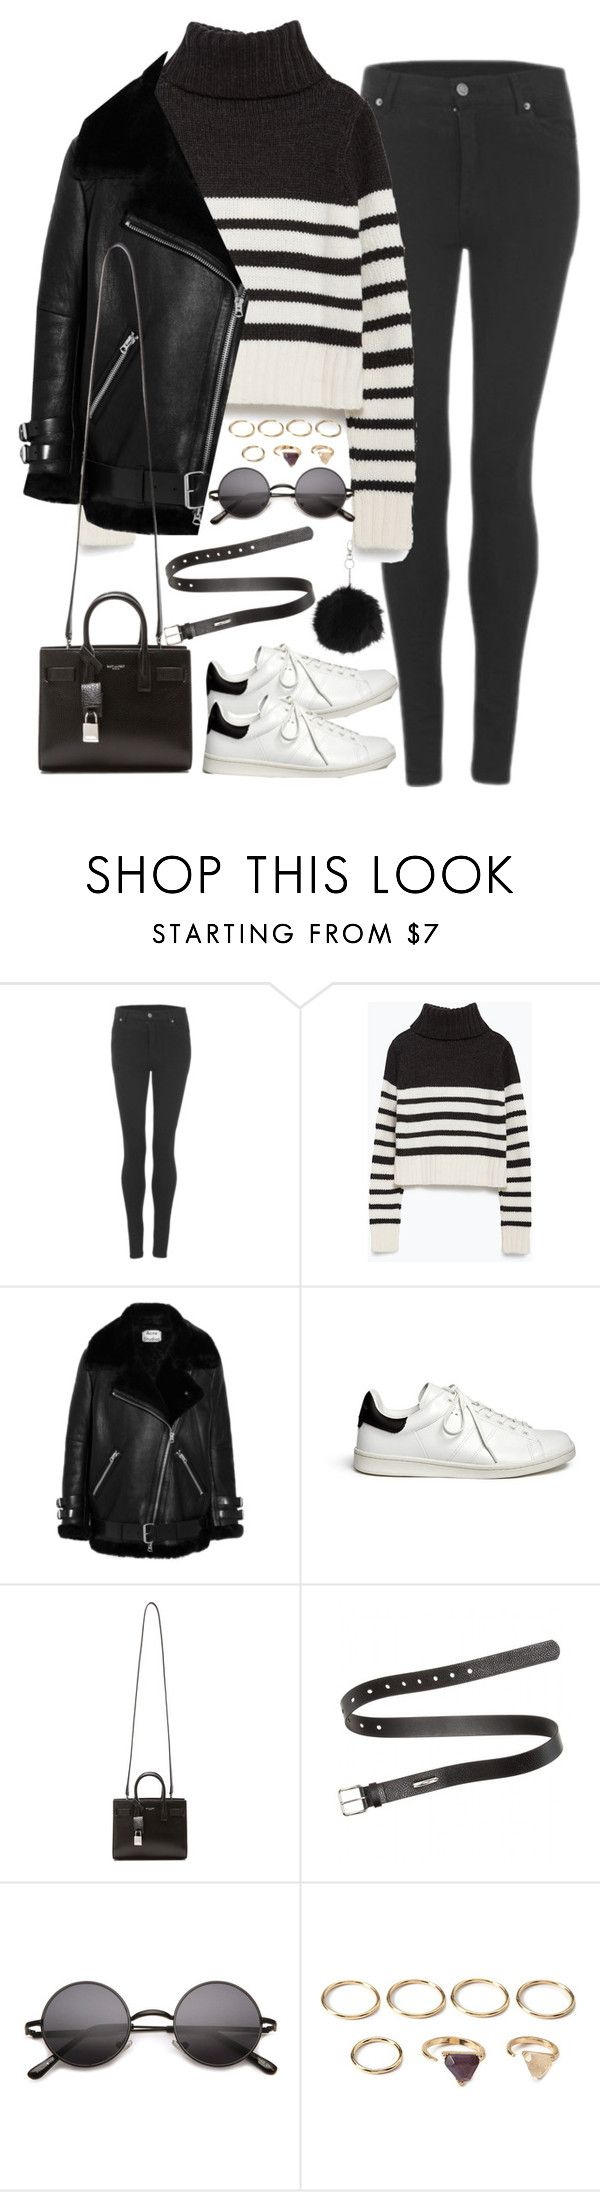 """Untitled#4198"" by fashionnfacts ❤ liked on Polyvore featuring Cheap Monday, Zara, Acne Studios, Étoile Isabel Marant, Yves Saint Laurent, Forever 21 and Topshop"